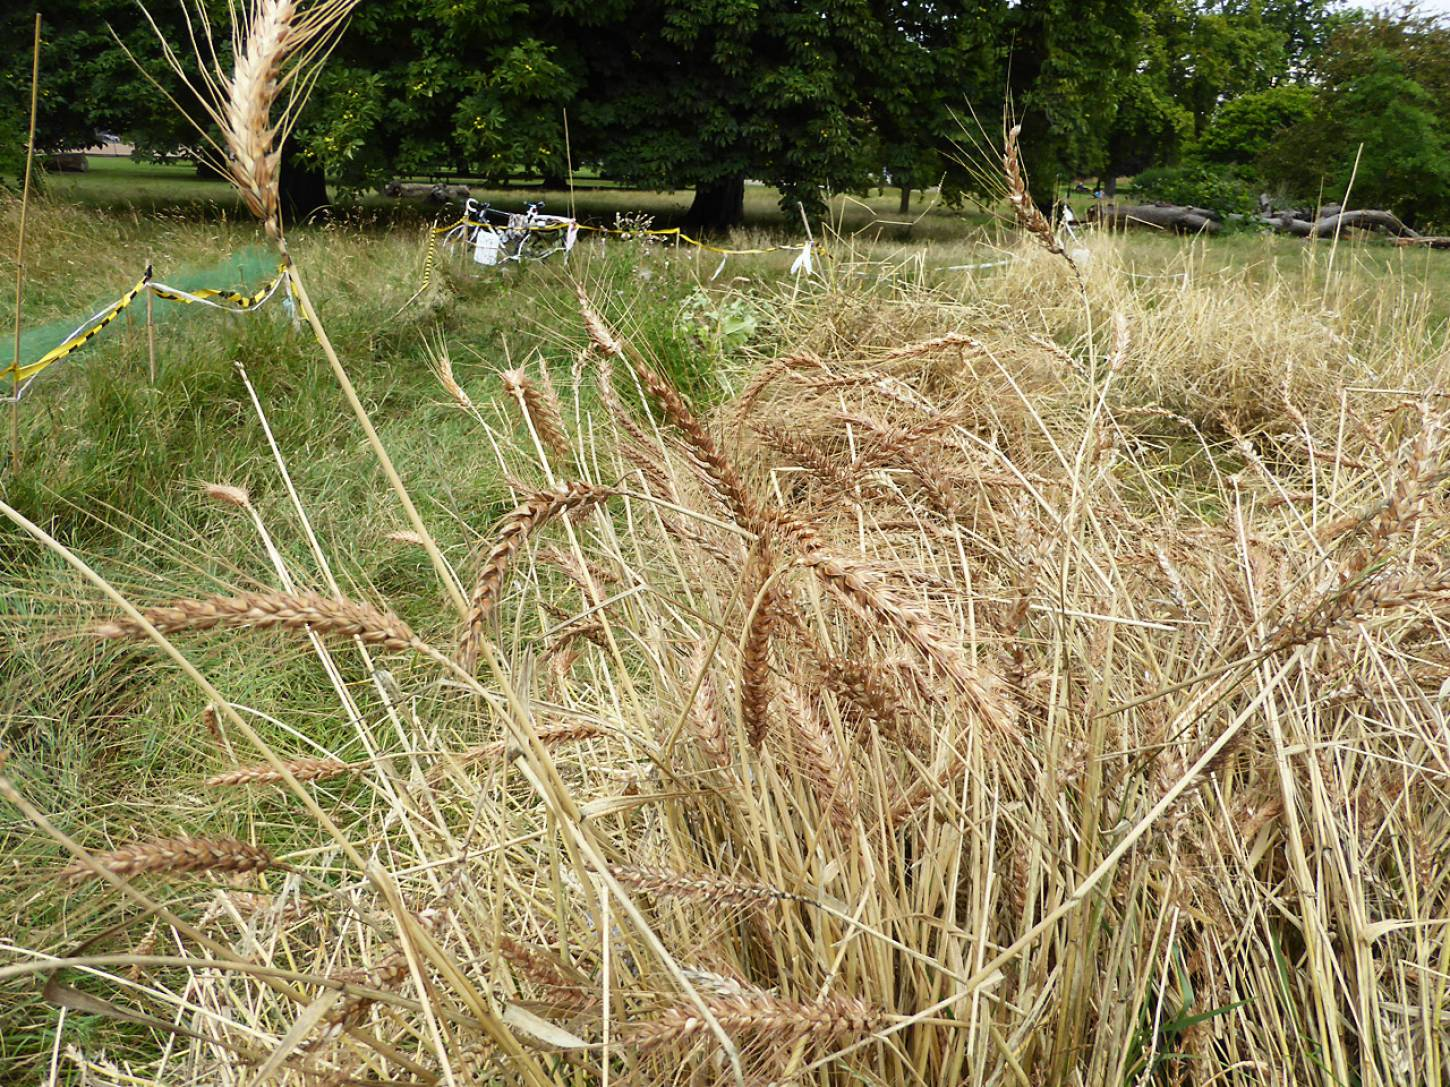 Ruskin Park 'Lys Brun' Swedish wheat harvest 2017 - 1:00pm&nbsp;25<sup>th</sup>&nbsp;Jul.&nbsp;'17  <a href='http://maps.google.com/?t=h&q=51.464925,-0.092508&z=18&output=embed' target=_blank><img src='http://www.brockwell-bake.org.uk/img/marker.png' style='border:none;vertical-align:top' height=16px></a>